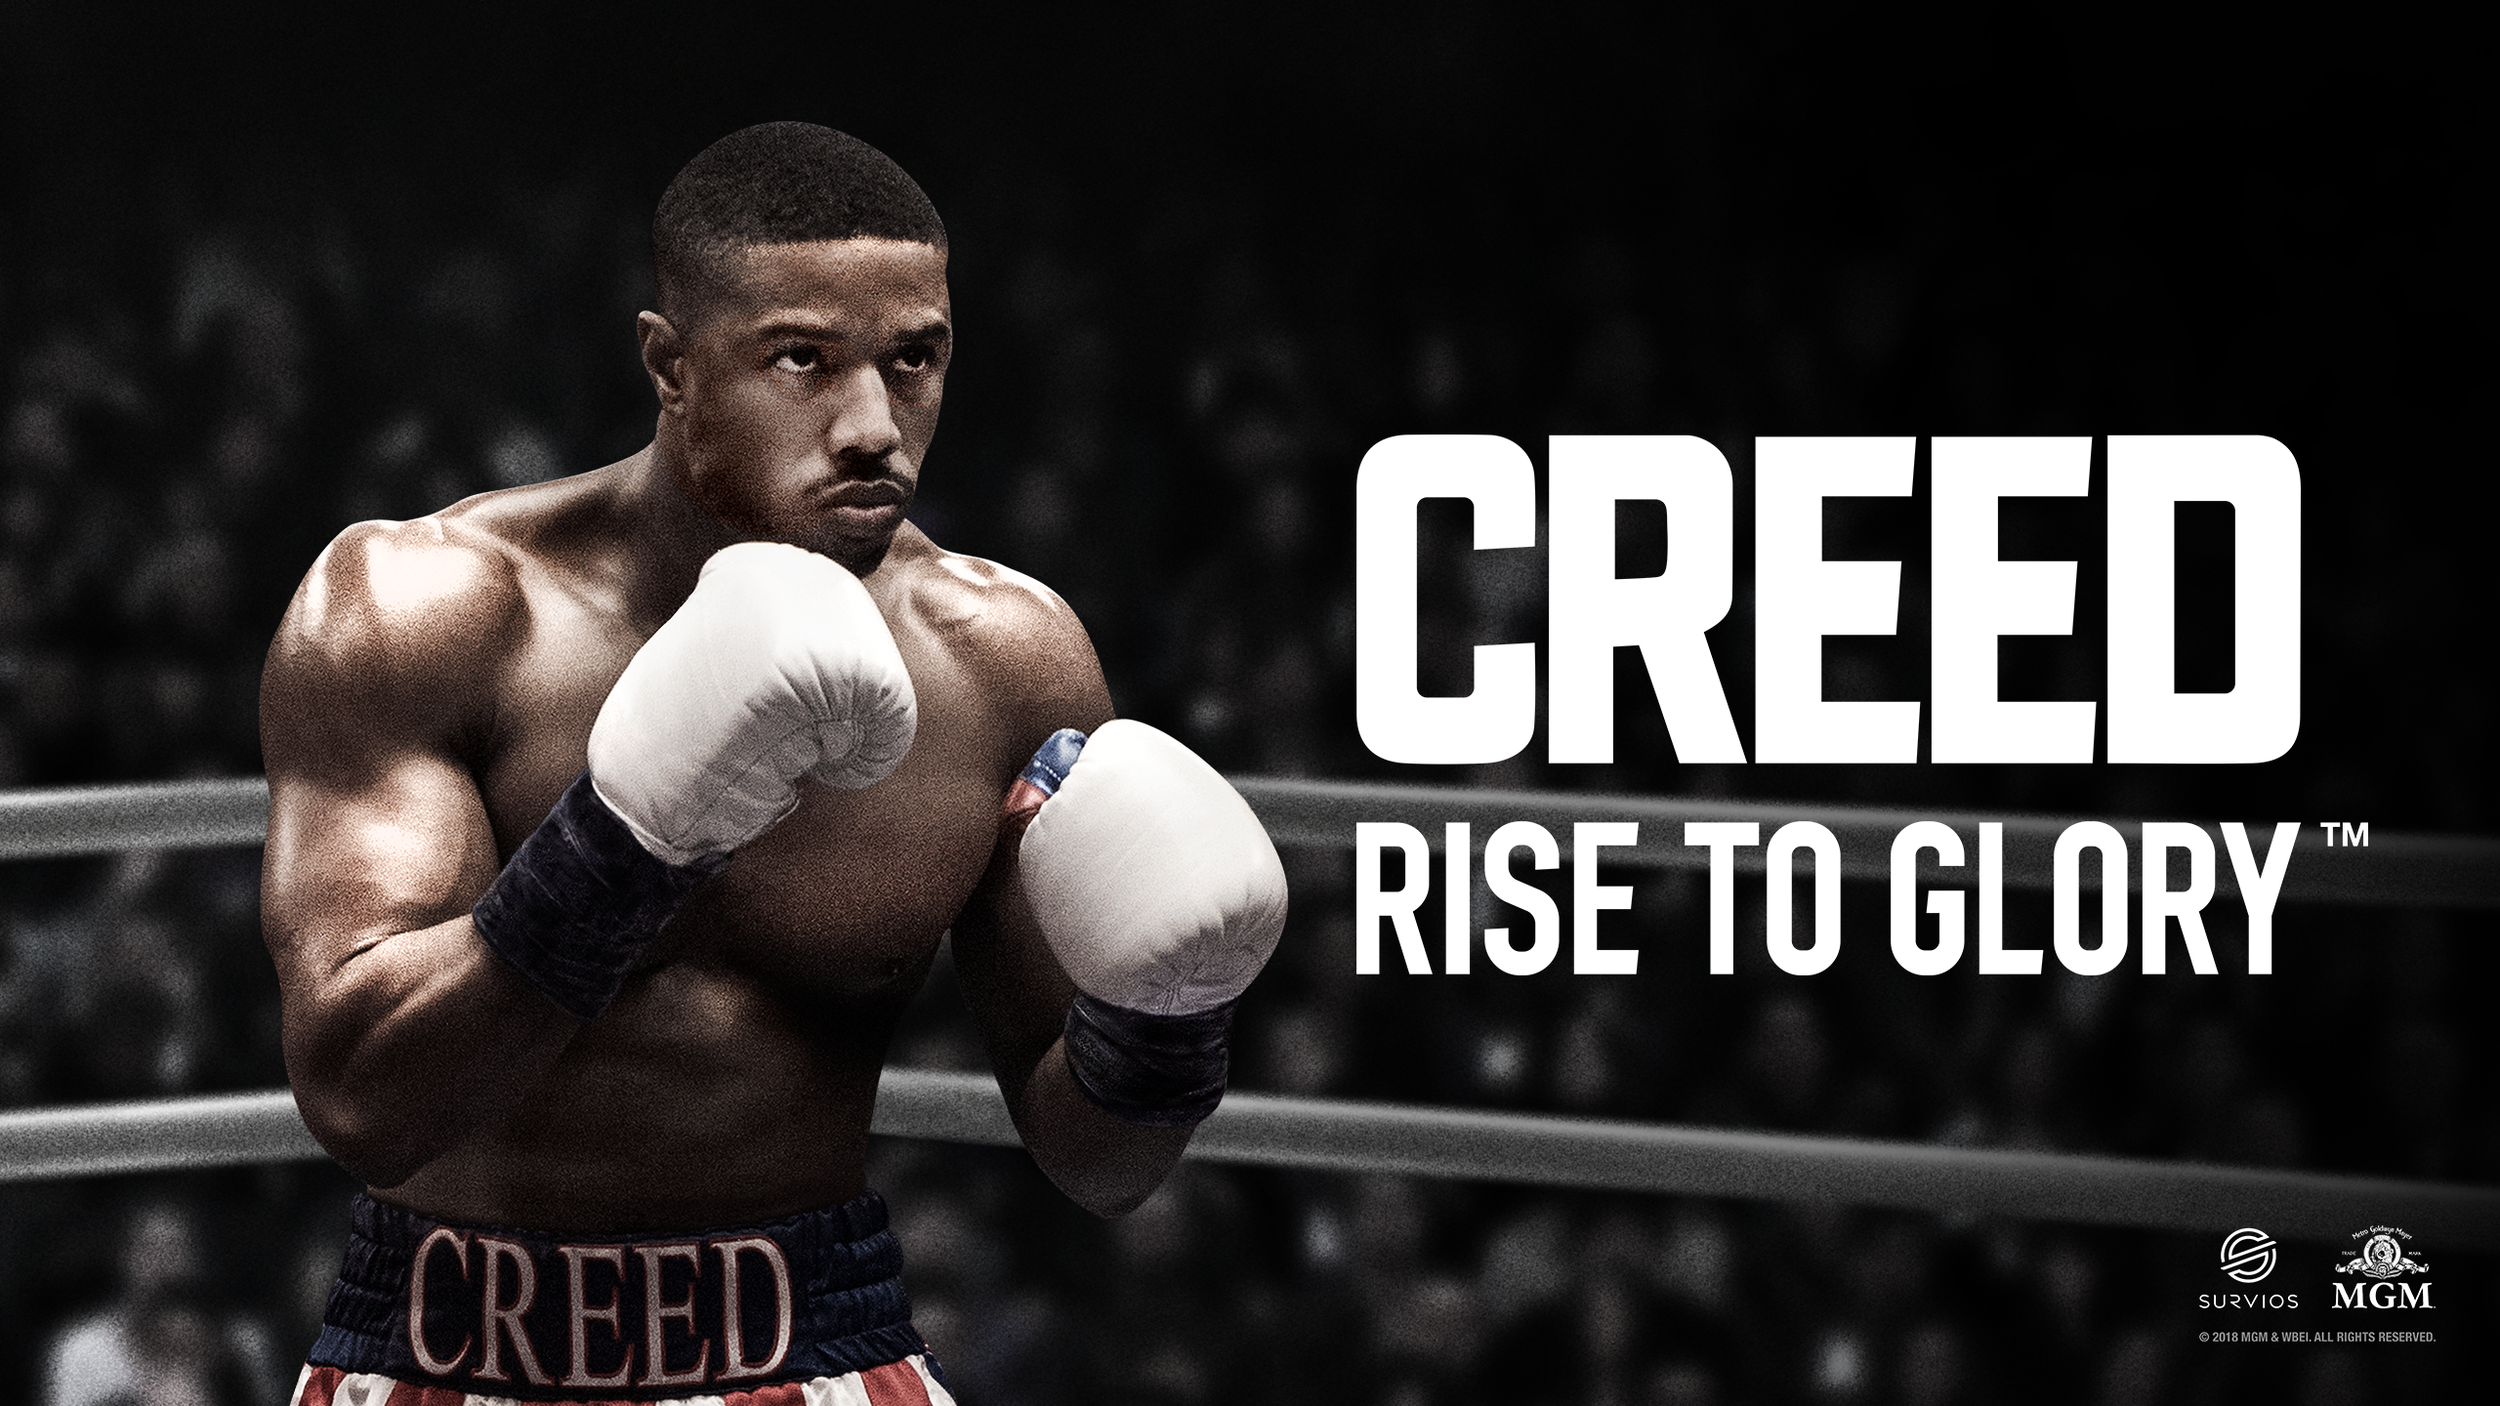 Digital-Creed-Cover-Art---Creed---201808132560x1440.png